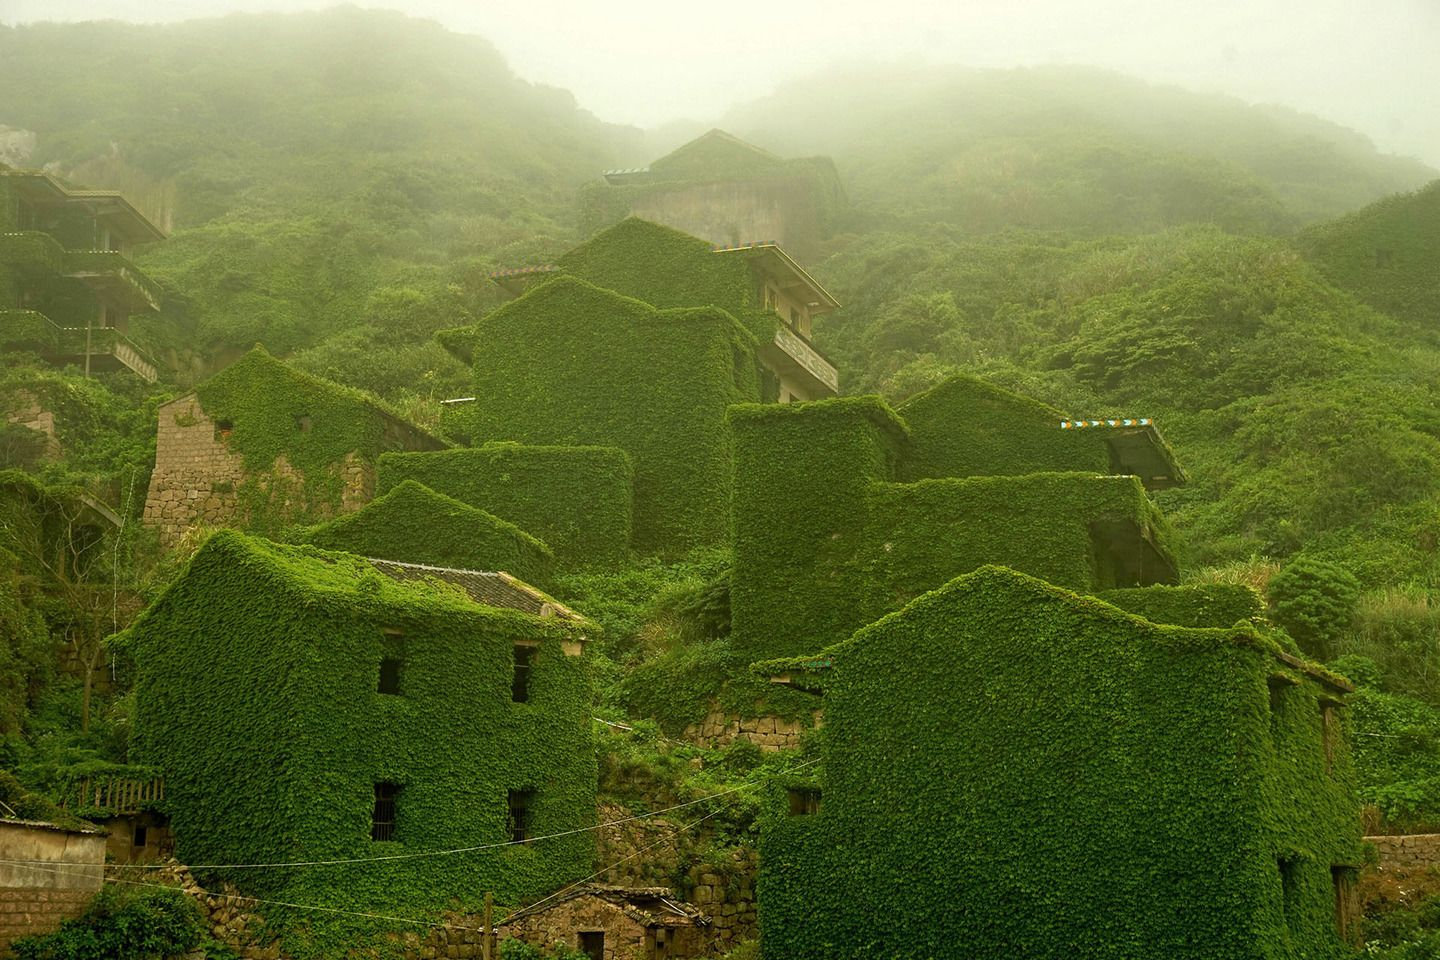 Creeping vines and other flora have enveloped a small, formerly inhabited fishing village on Shengshan Island roughly 40 miles east of Shanghai, which is part of the Shengsi Islands, a chain of islands in China's Zhejiang province. The village along the northern bay of Shengshan Island was abandoned after its residents, mostly fishermen, left in the early 1990s.